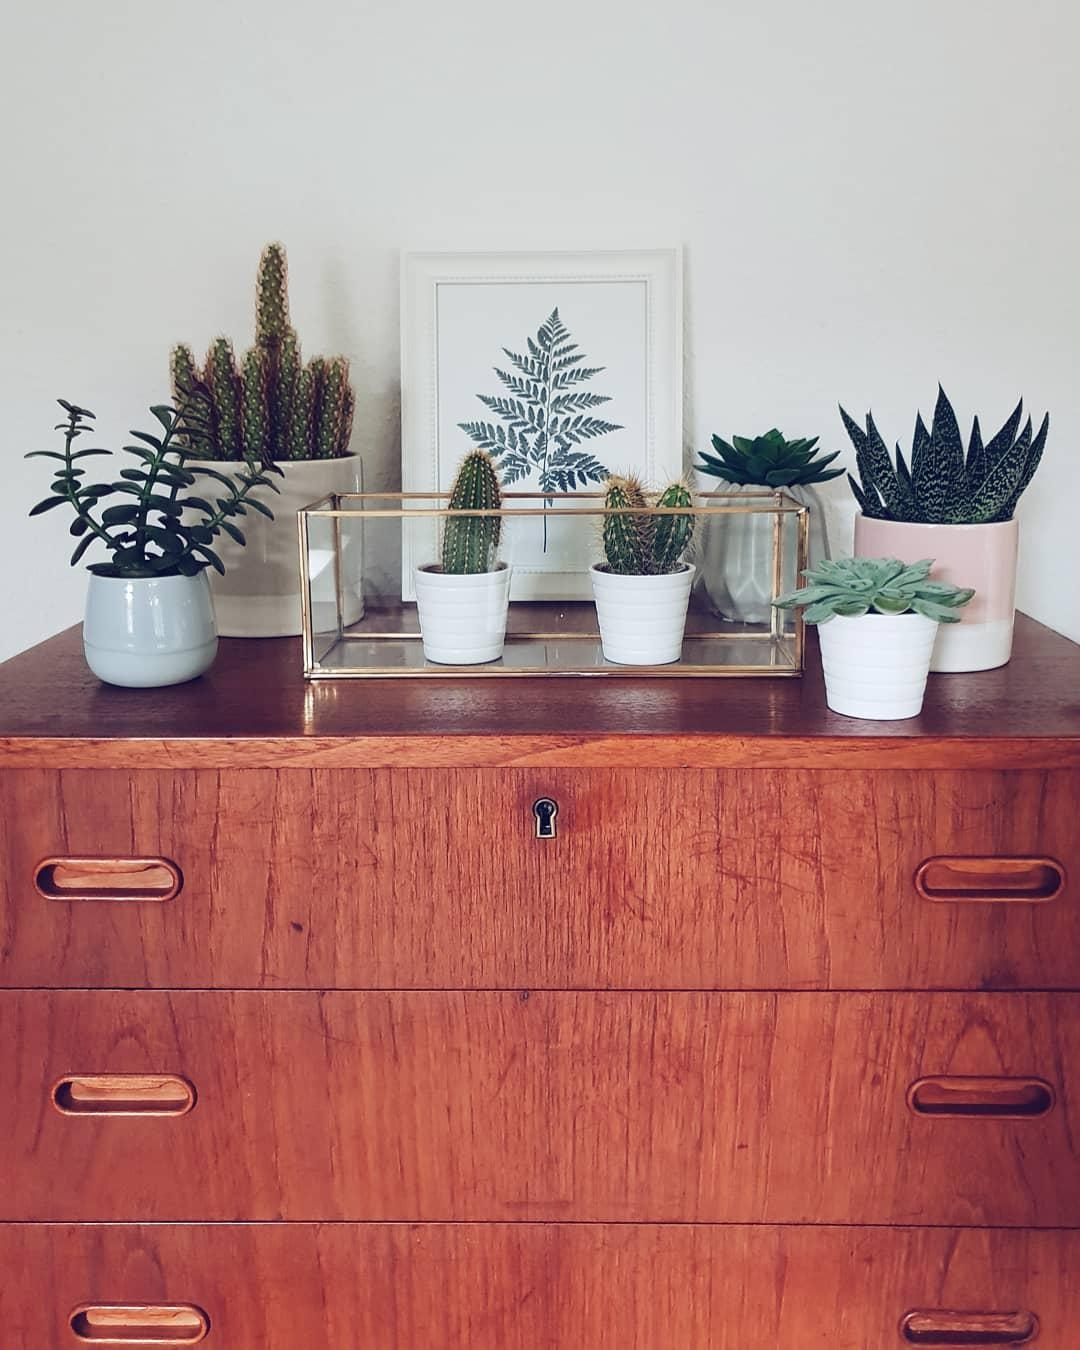 Plantgang plantlover urbanjungle greenliving greeninspo cactus succulents plants gruen interior decoration homedetails  afb06b20 ad4e 4d96 a129 9fc966a6043e